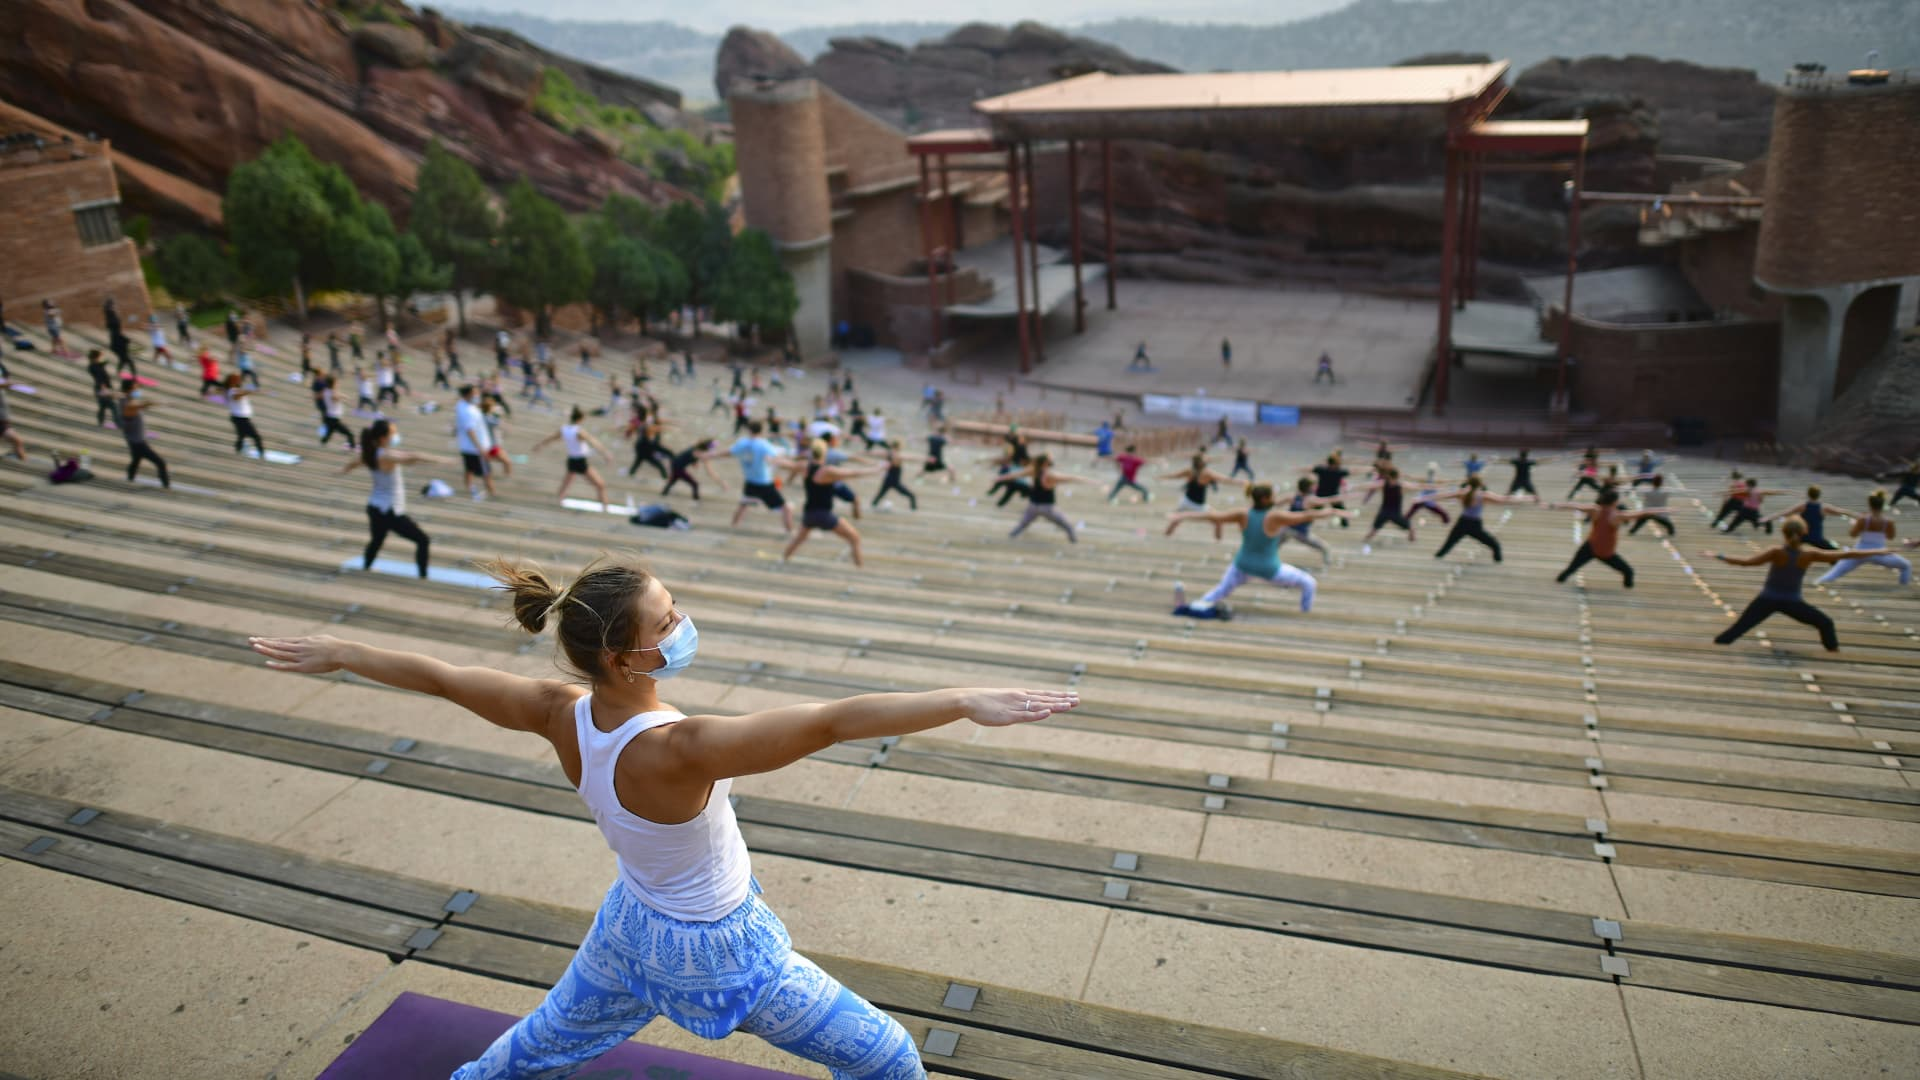 Dixie Strange, 30, at an Aug. 22, 2020, morning yoga session at the Red Rocks Amphitheatre in Morrison, Colorado.